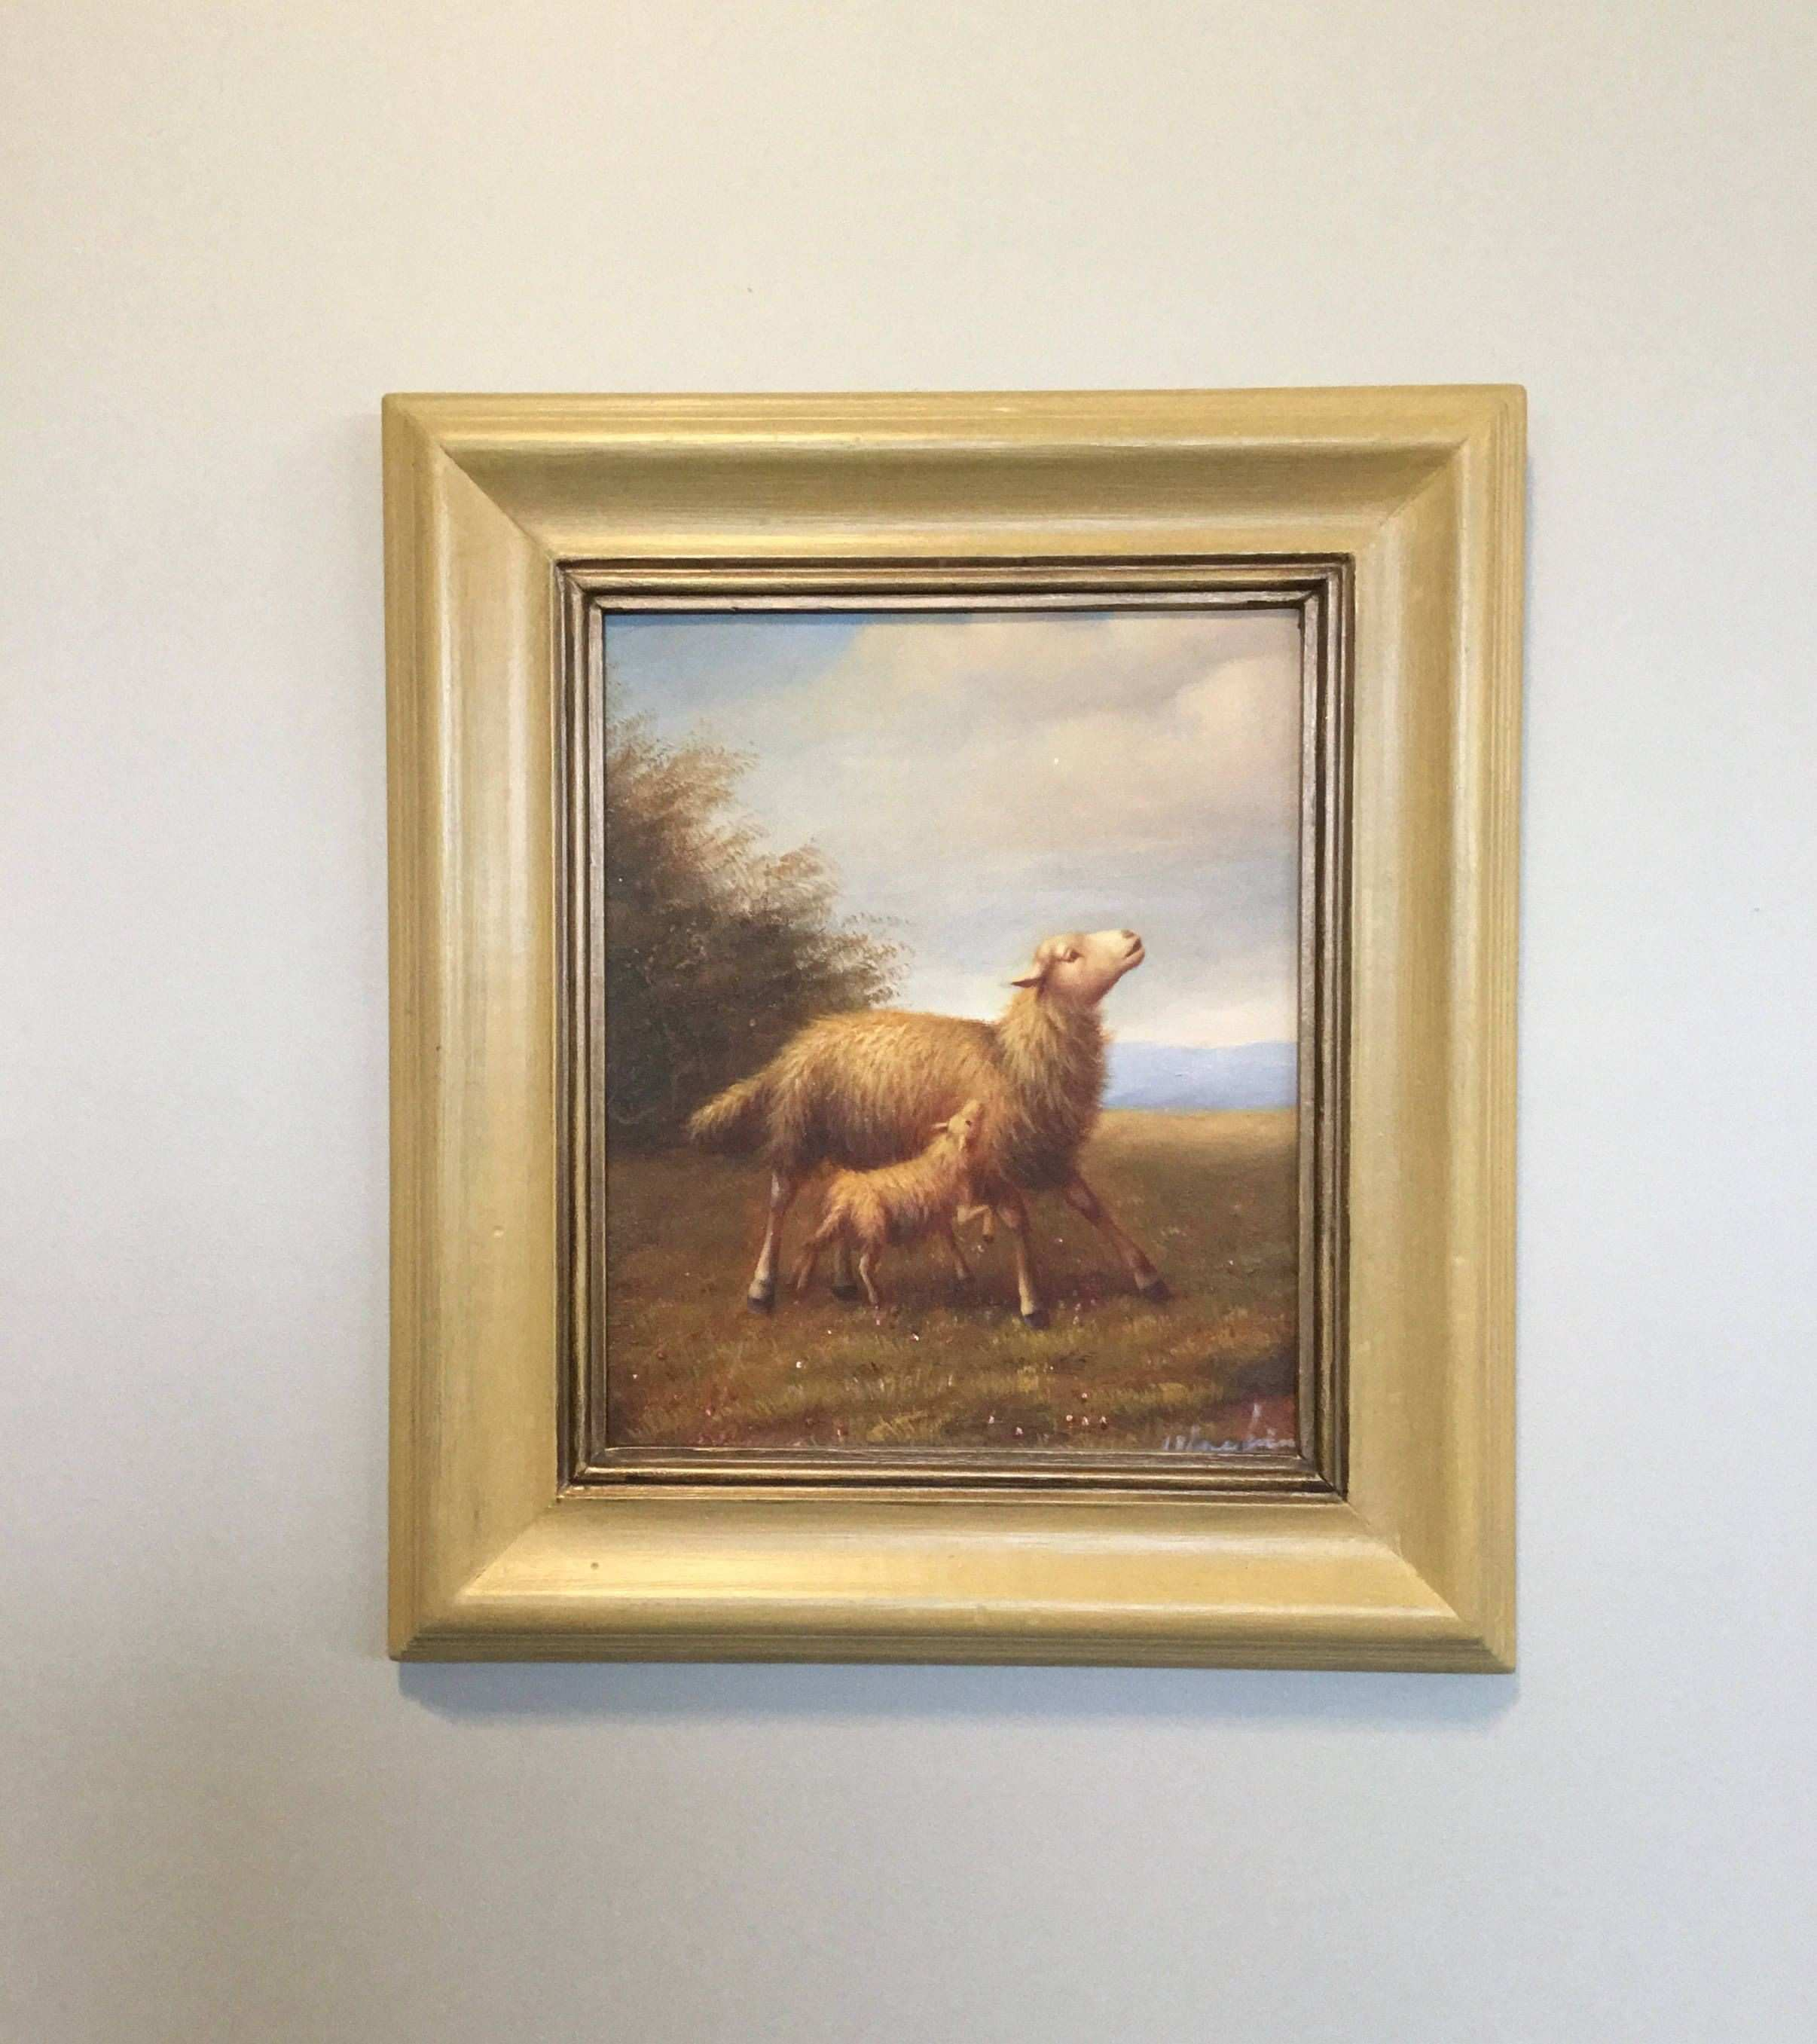 ON SALE Signed oil painting of mother and baby sheep in a hand